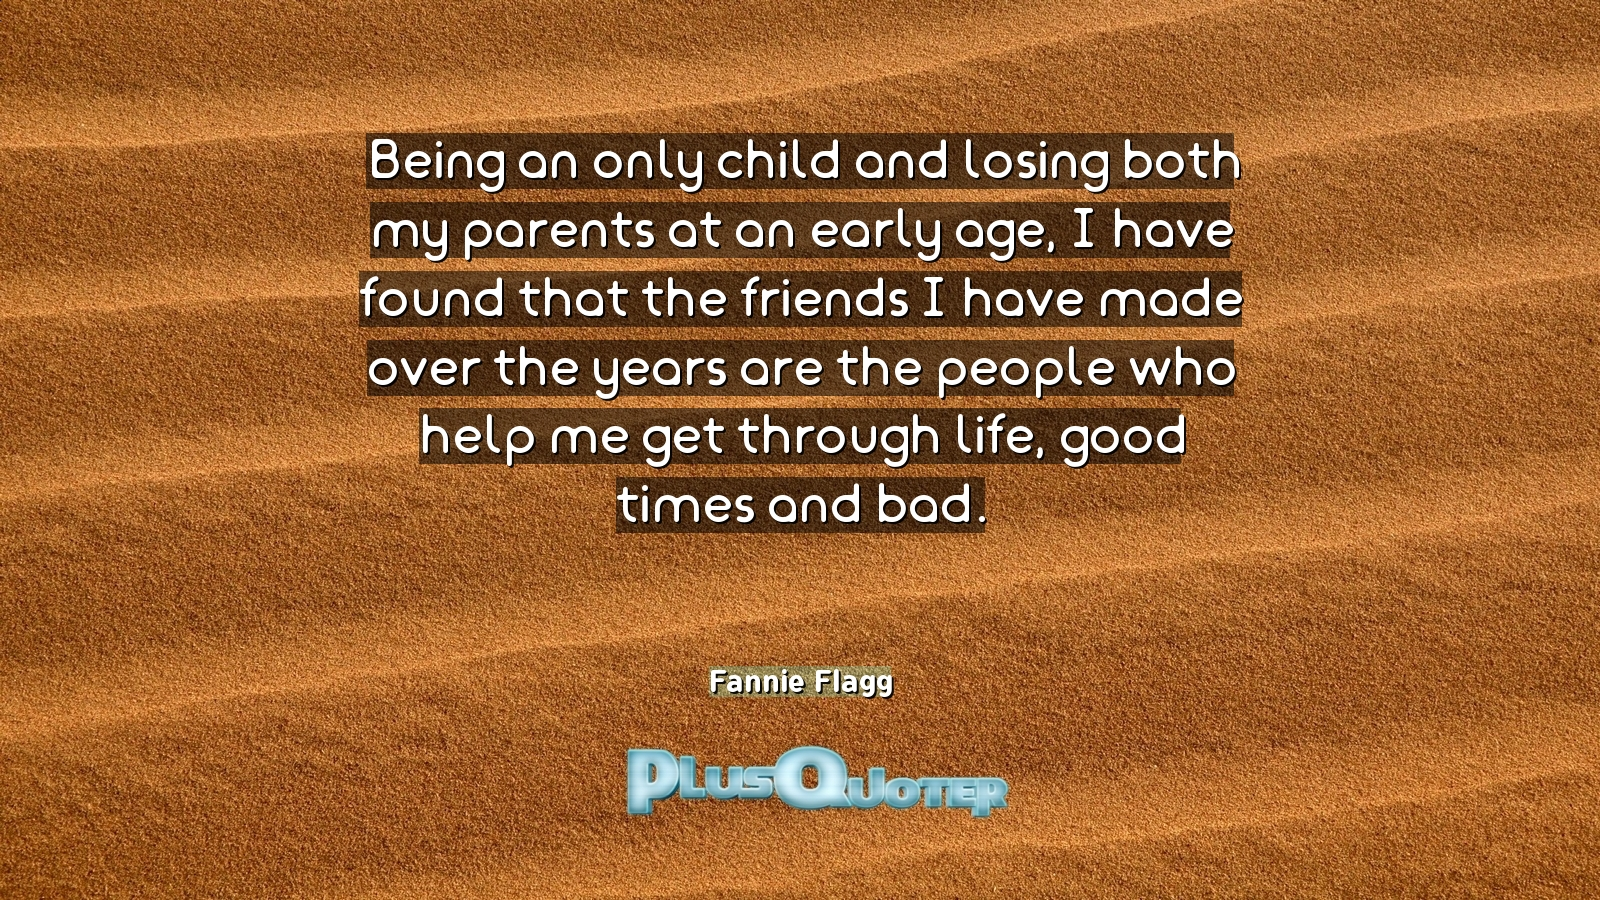 Quotes About Losing A Child Being An Only Child And Losing Both My Parents At An Early Age I